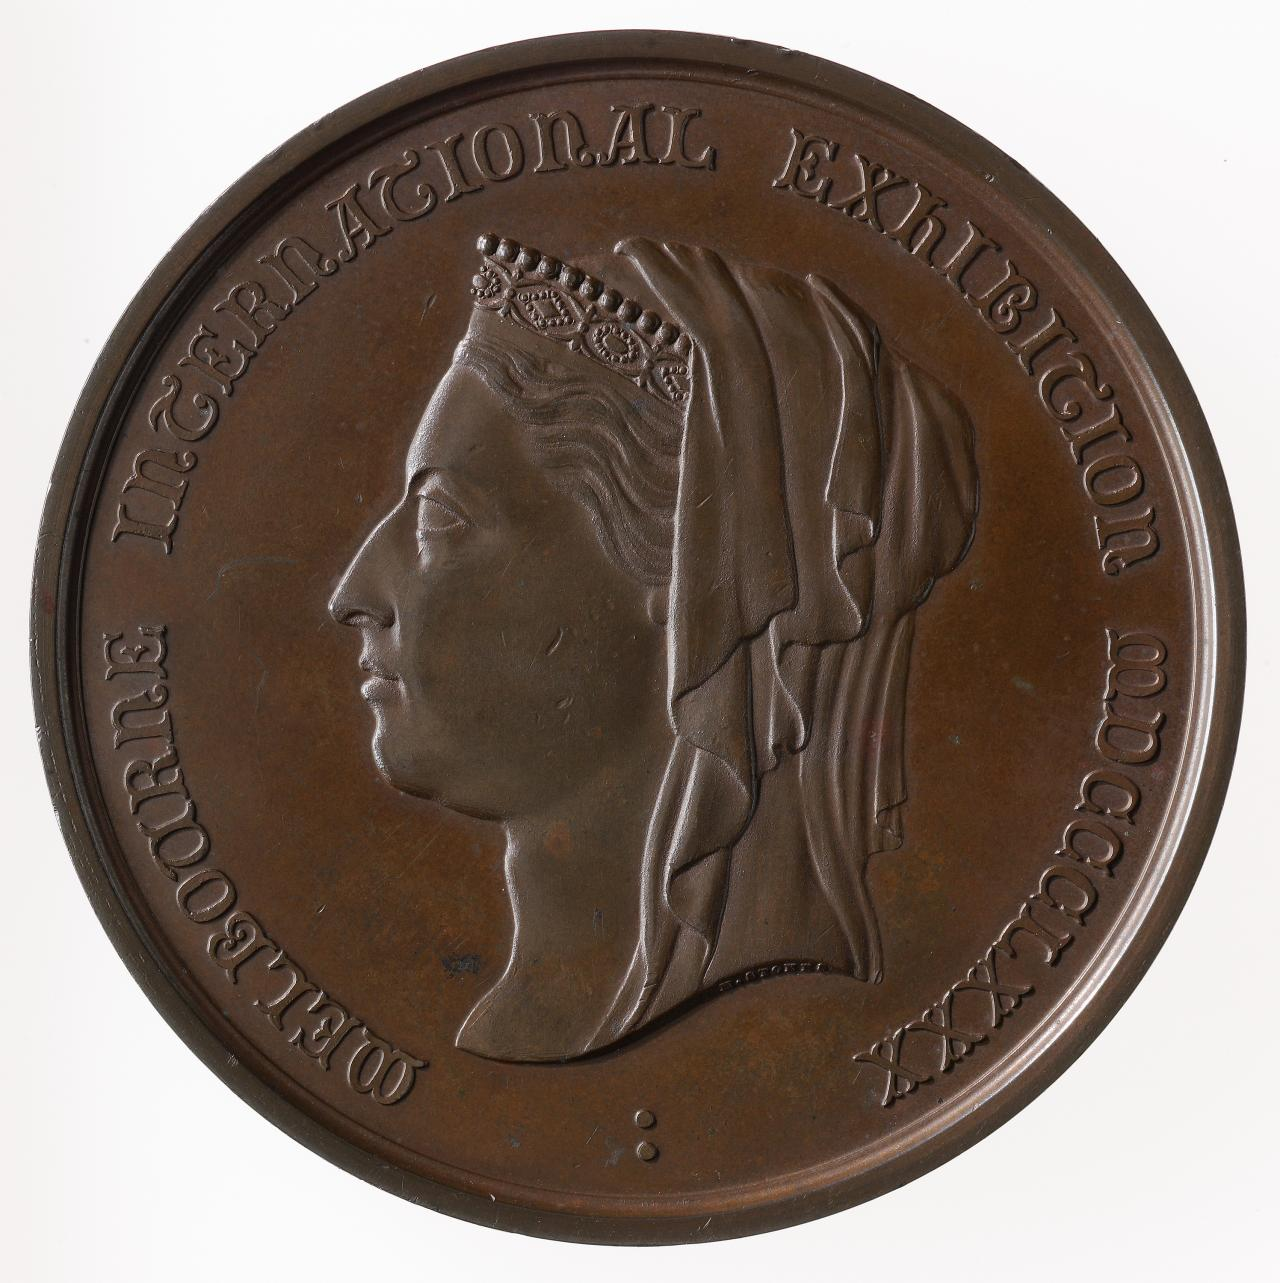 International Exhibition, Melbourne, commemorative medal